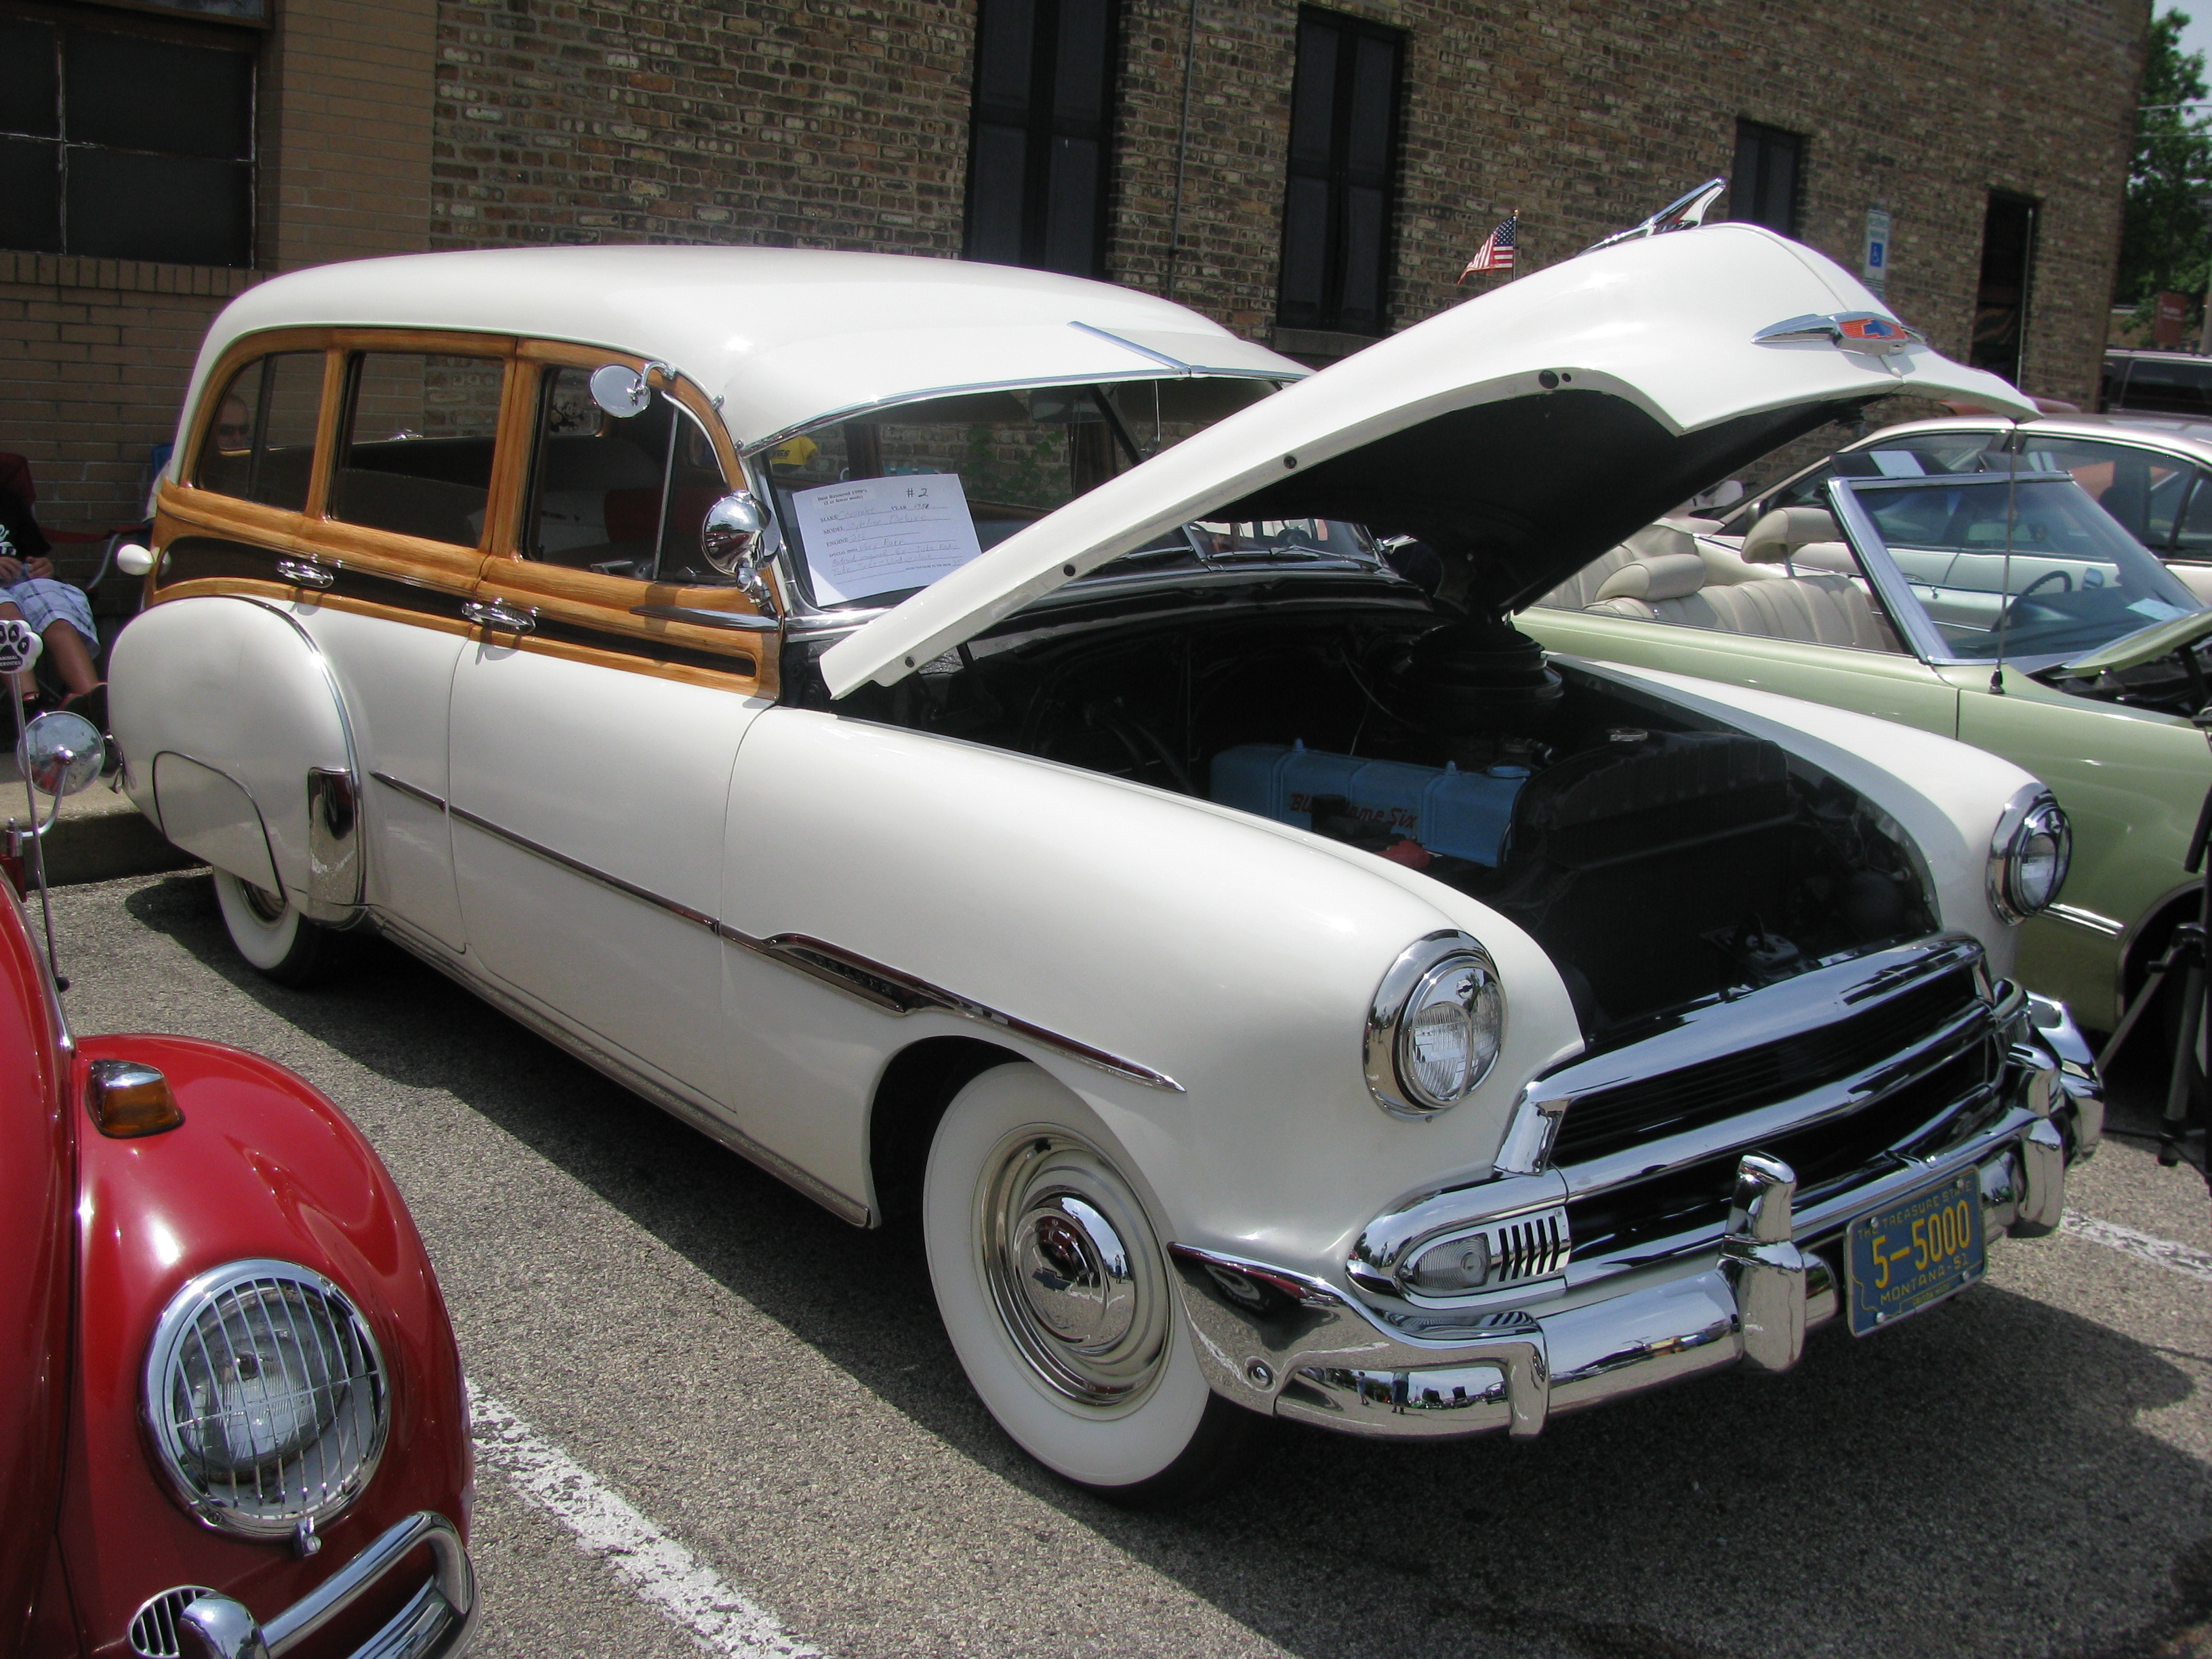 ff085069f View photo of 1951 Chevrolet Styleline Deluxe Station Wagon ...